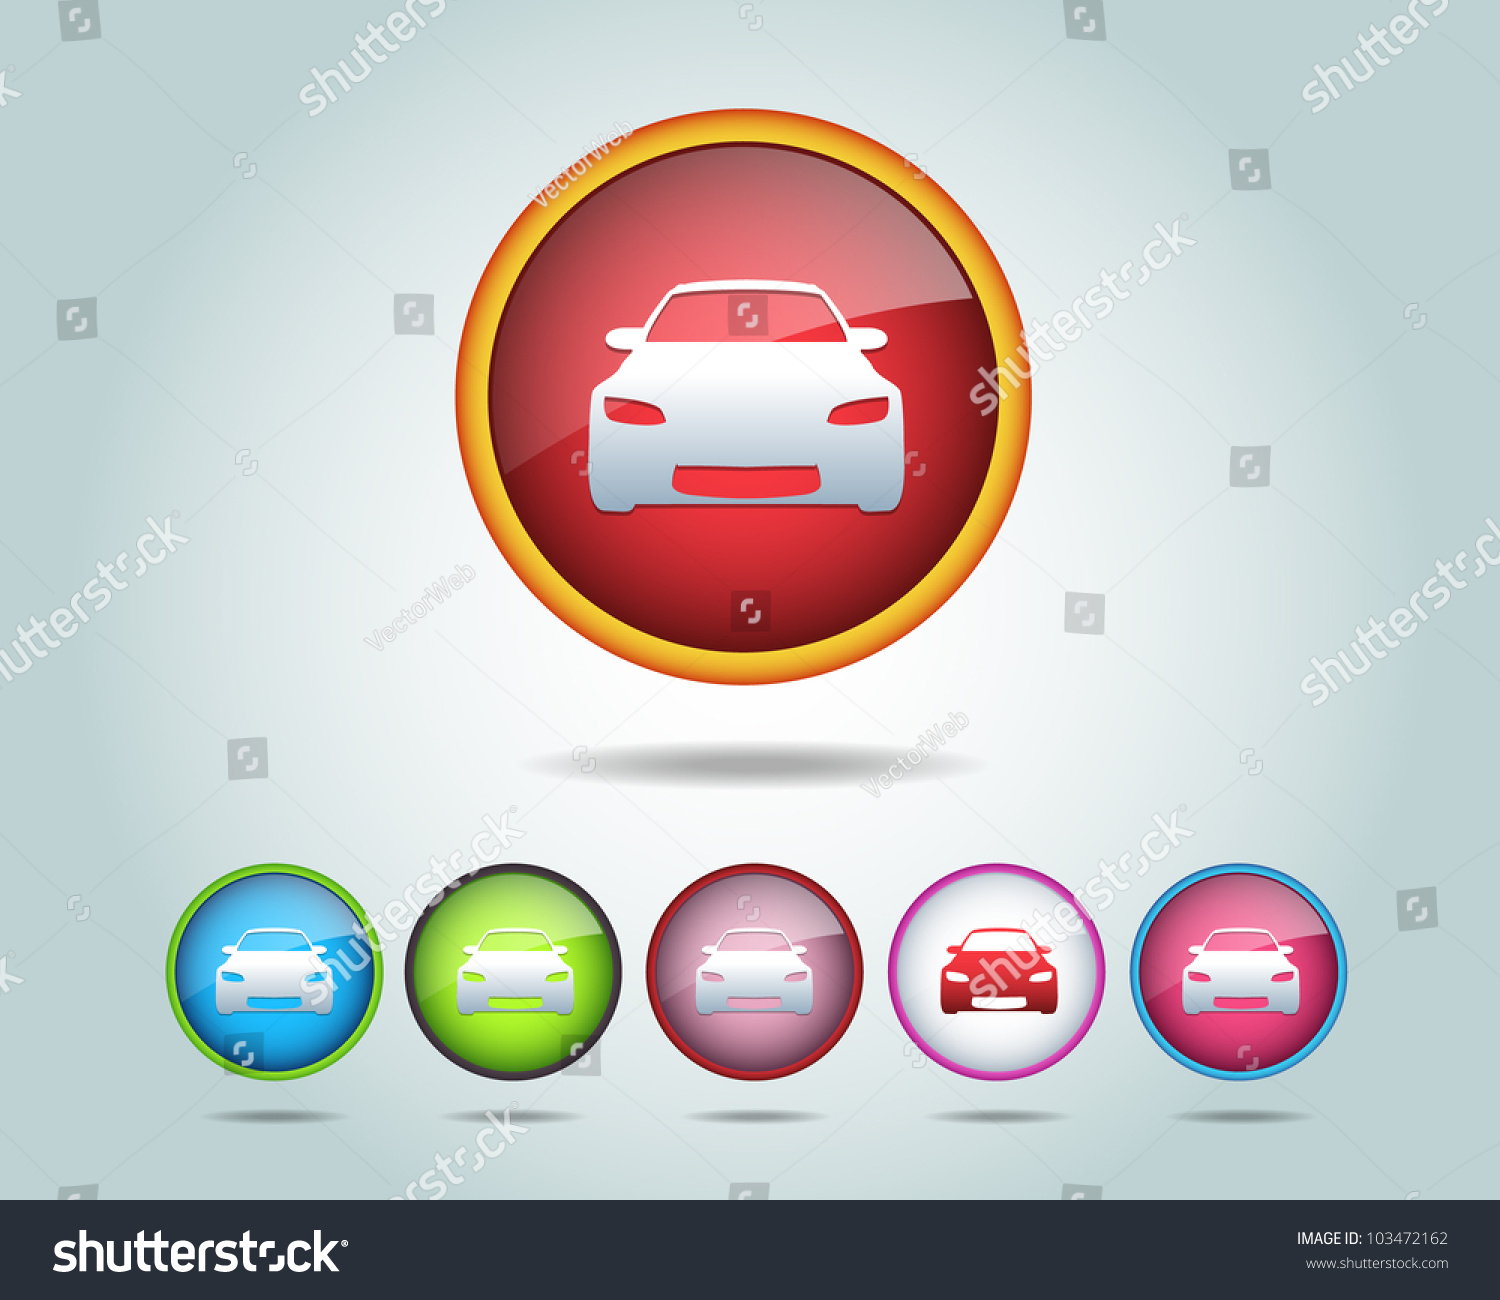 car icon button vector design 103472162 shutterstock. Black Bedroom Furniture Sets. Home Design Ideas